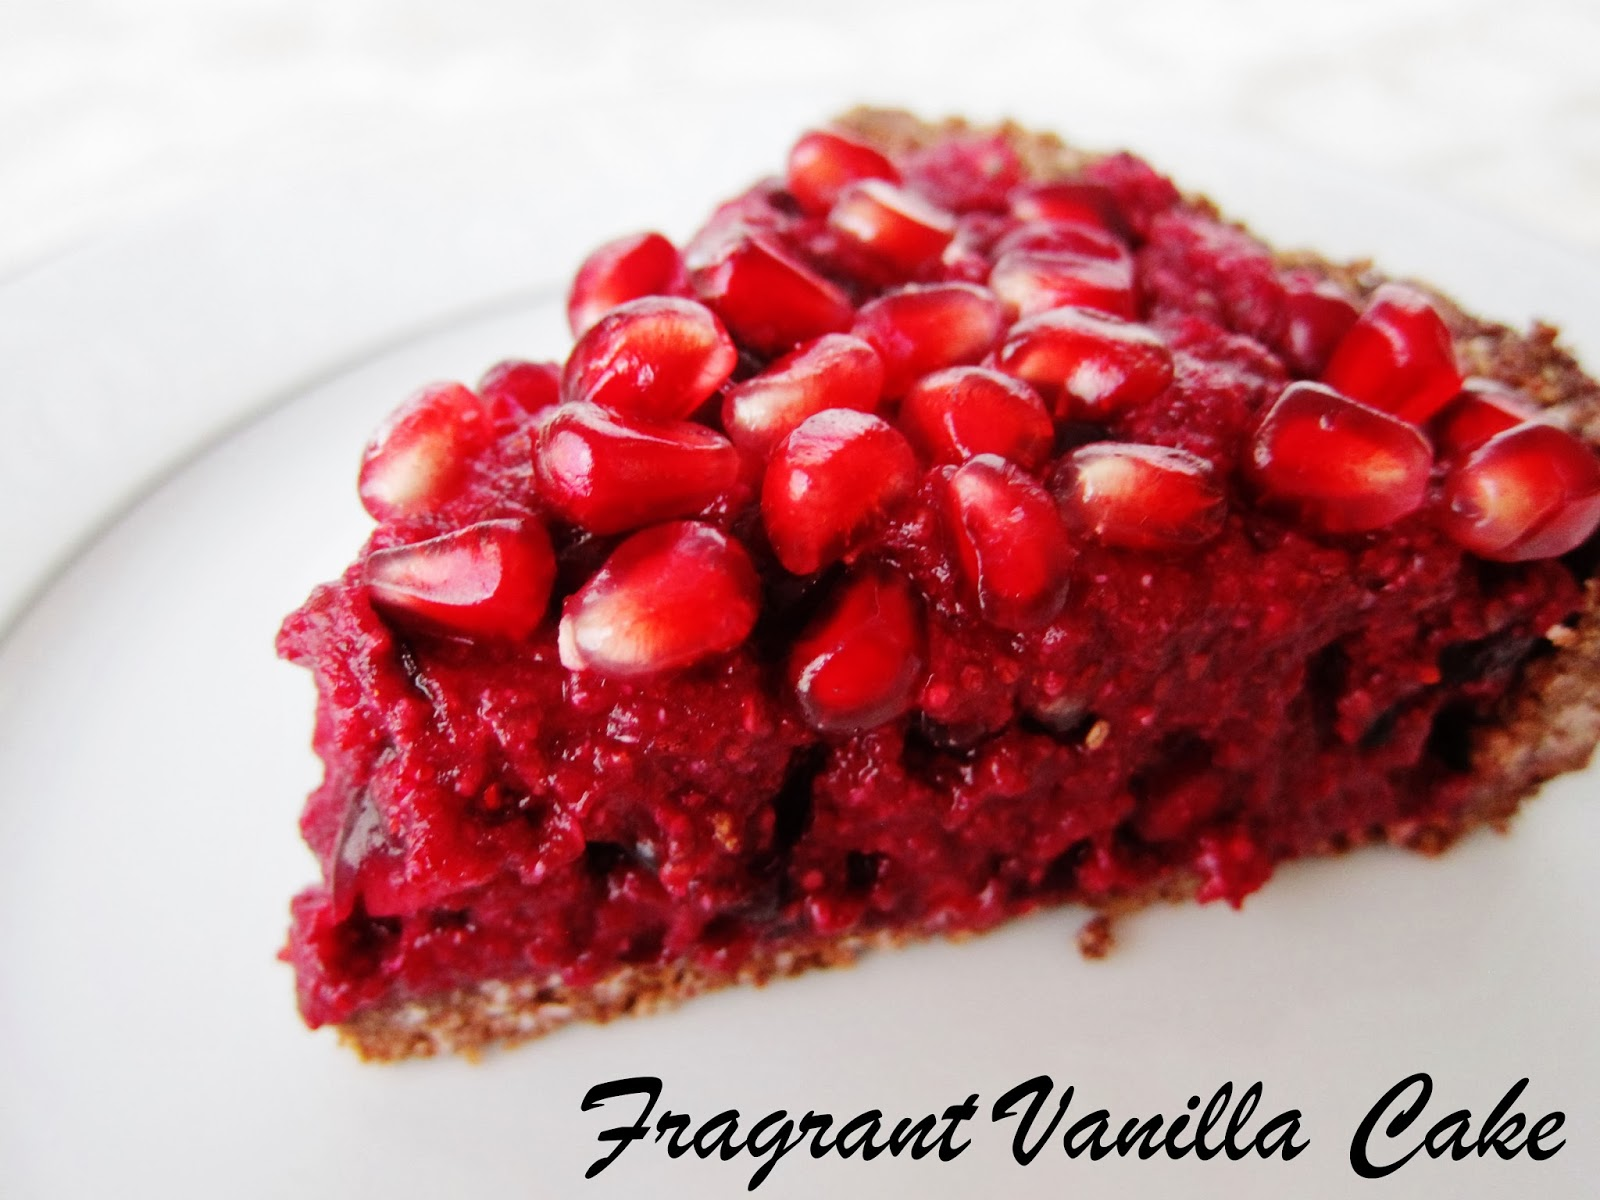 Fragrant Vanilla Cake: Top 20 Holiday Desserts 2013